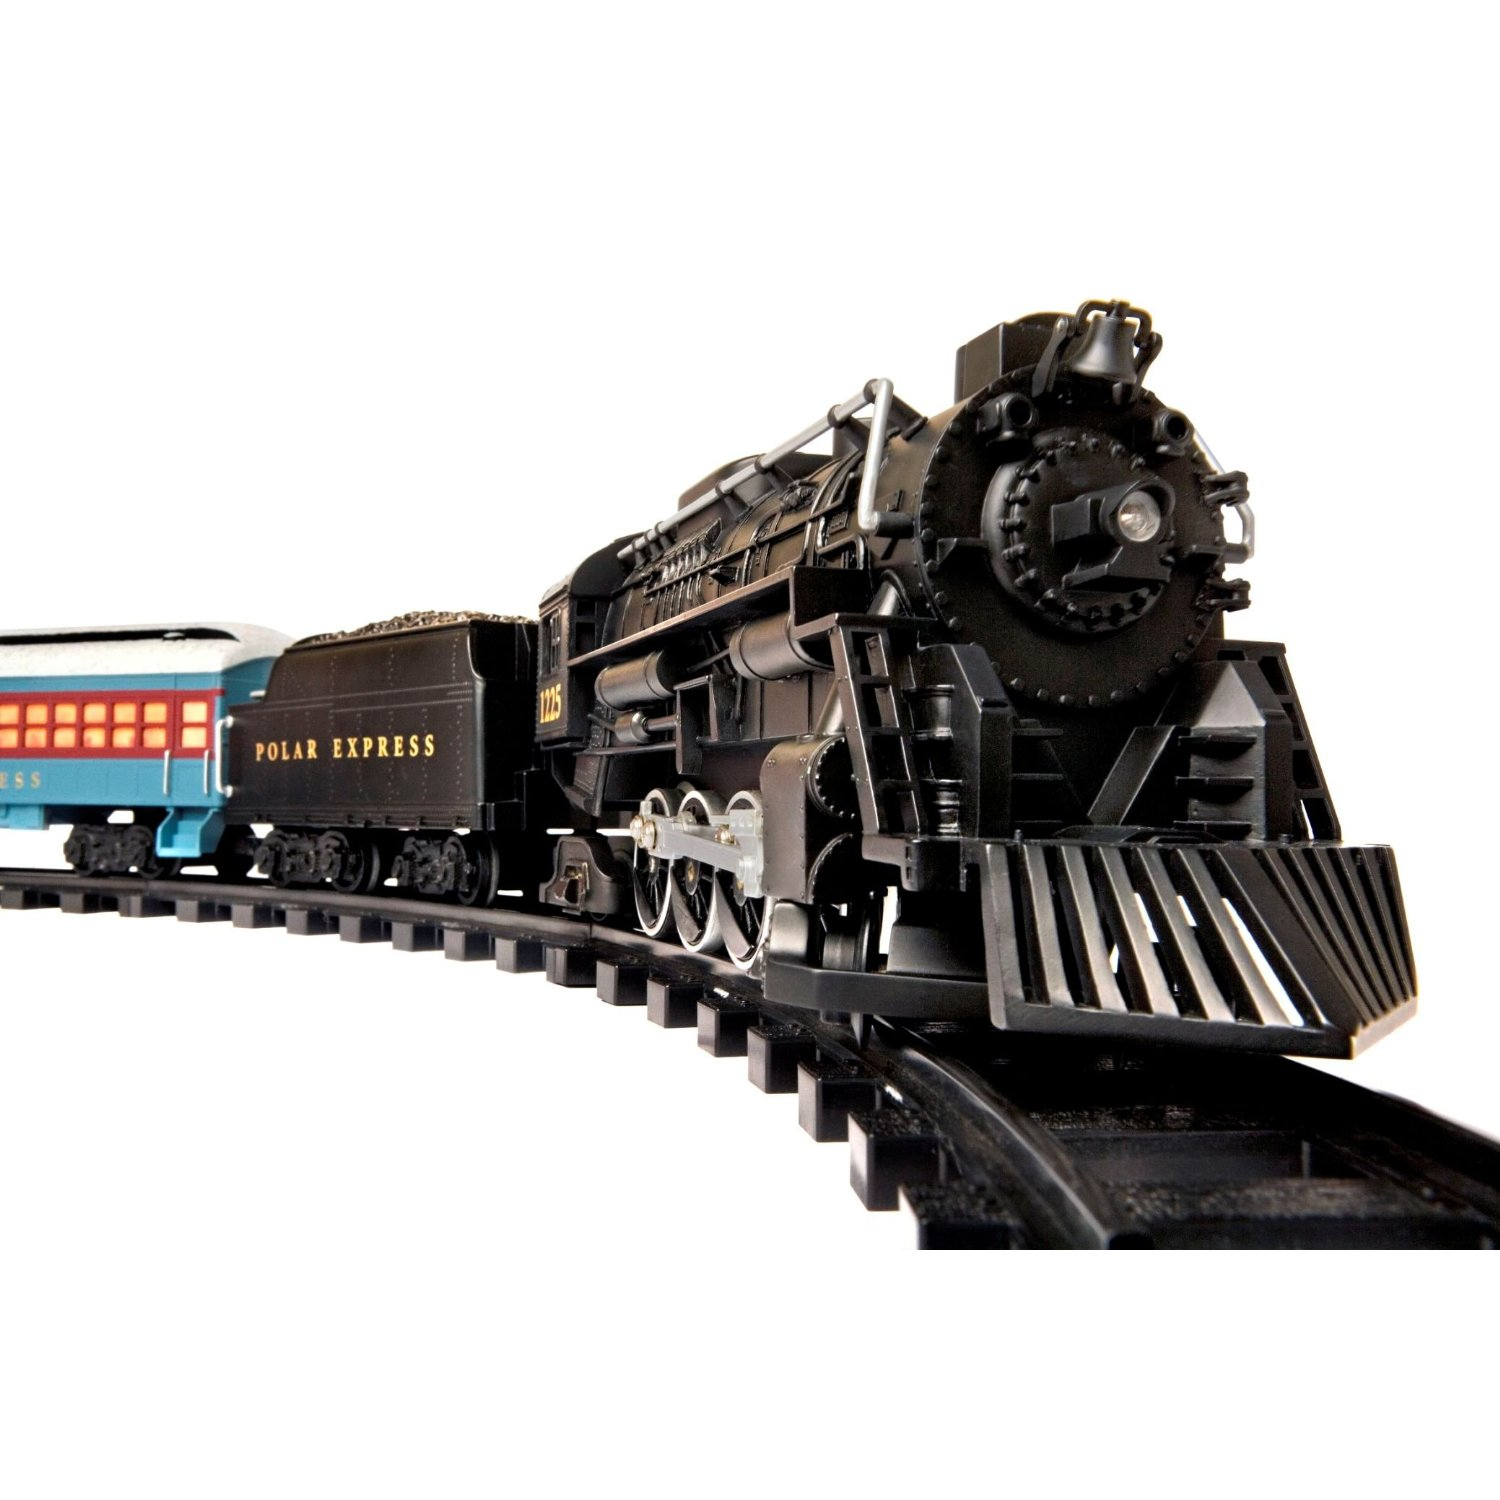 10 Days of Gifting! Lionel Polar Express Giveaway